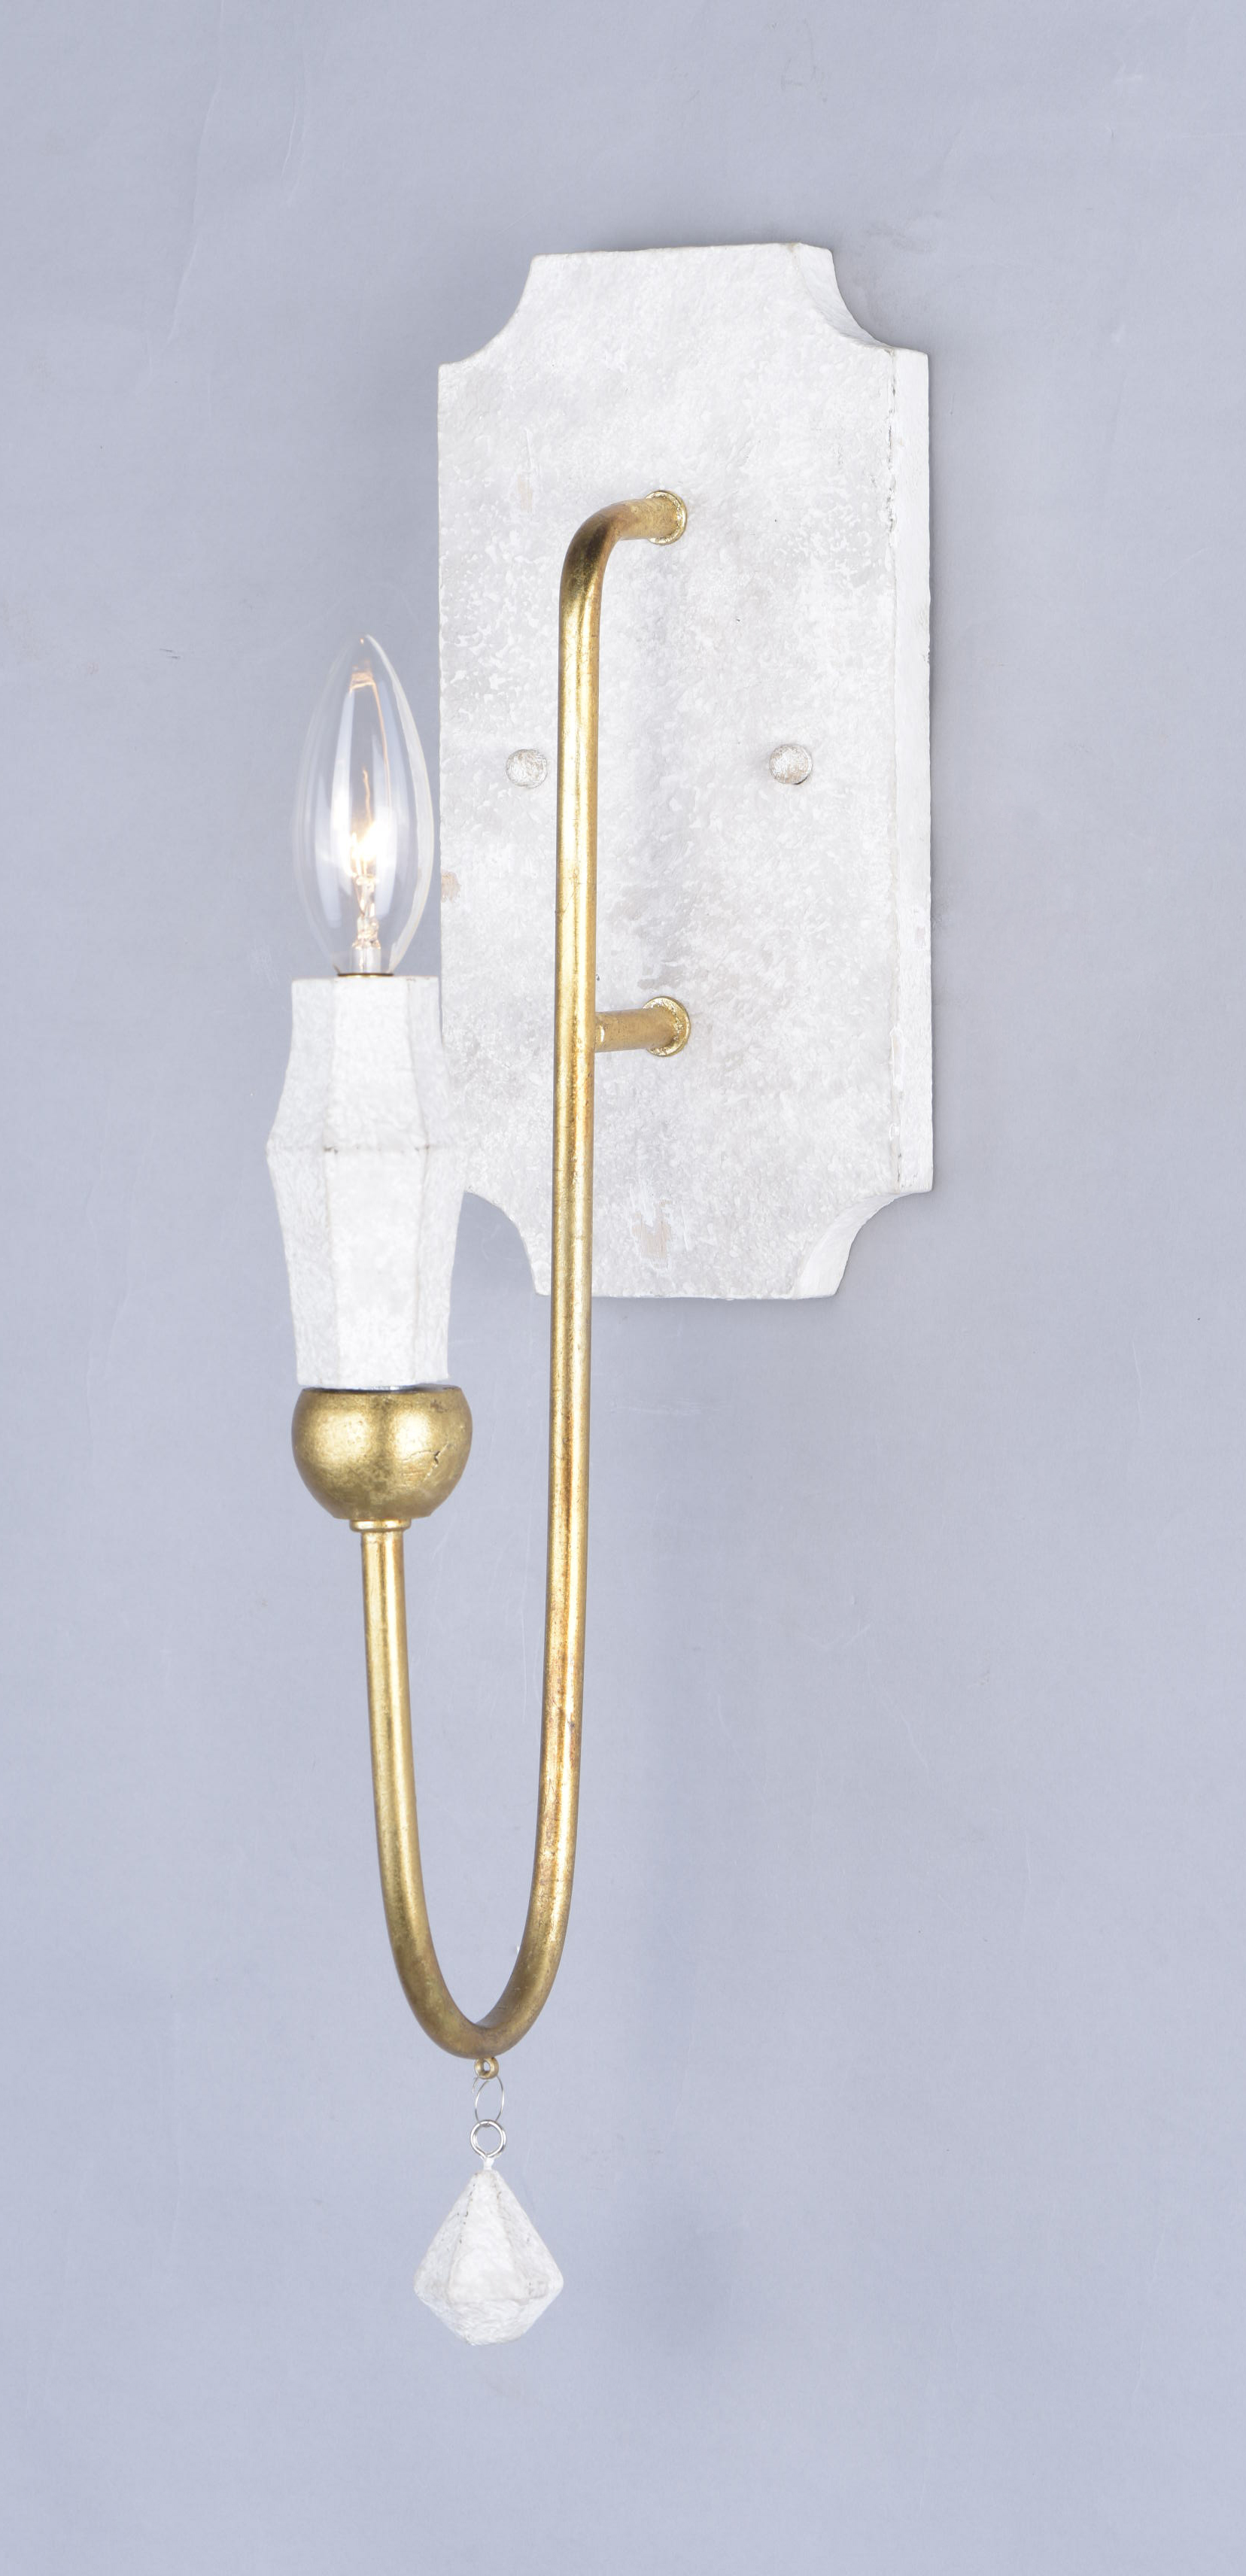 Chandelier Wall Light Sconce : Claymore 1-Light Wall Sconce - Chandelier - Maxim Lighting